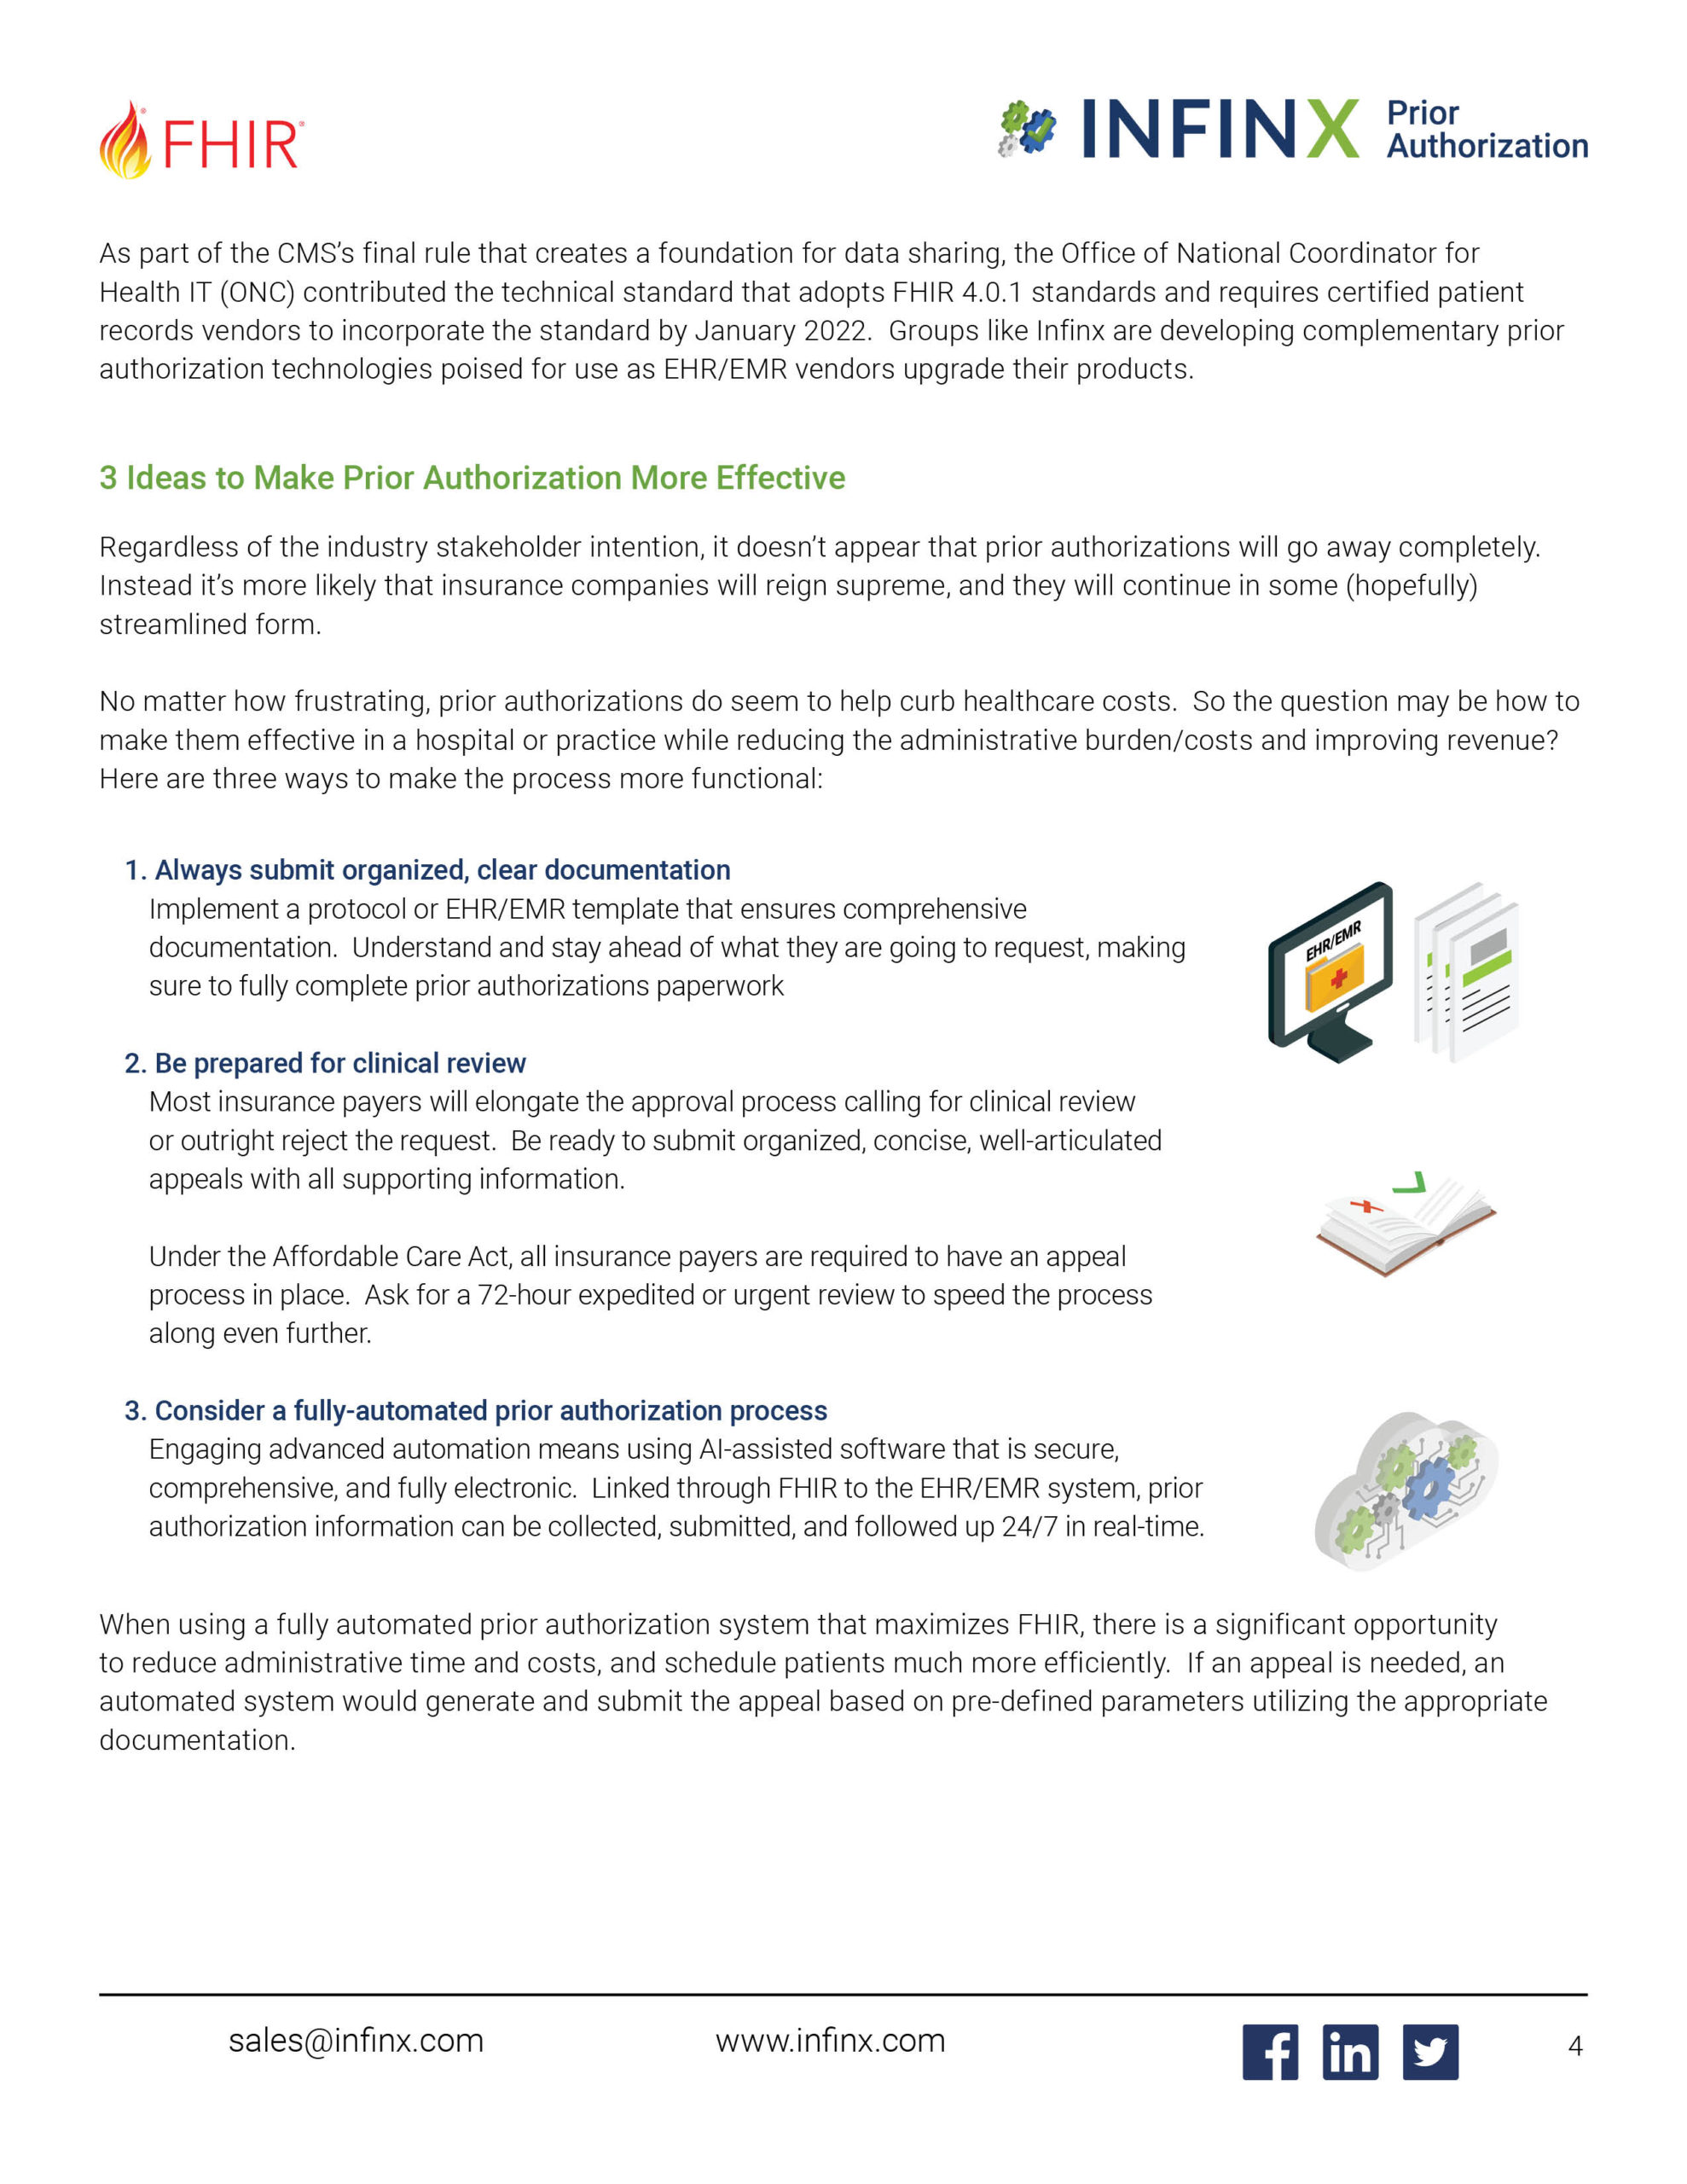 Infinx - White Paper - How Fast Healthcare Interoperability Resources (FHIR) Positively Impact Automated Prior Authorizations July202 1 4